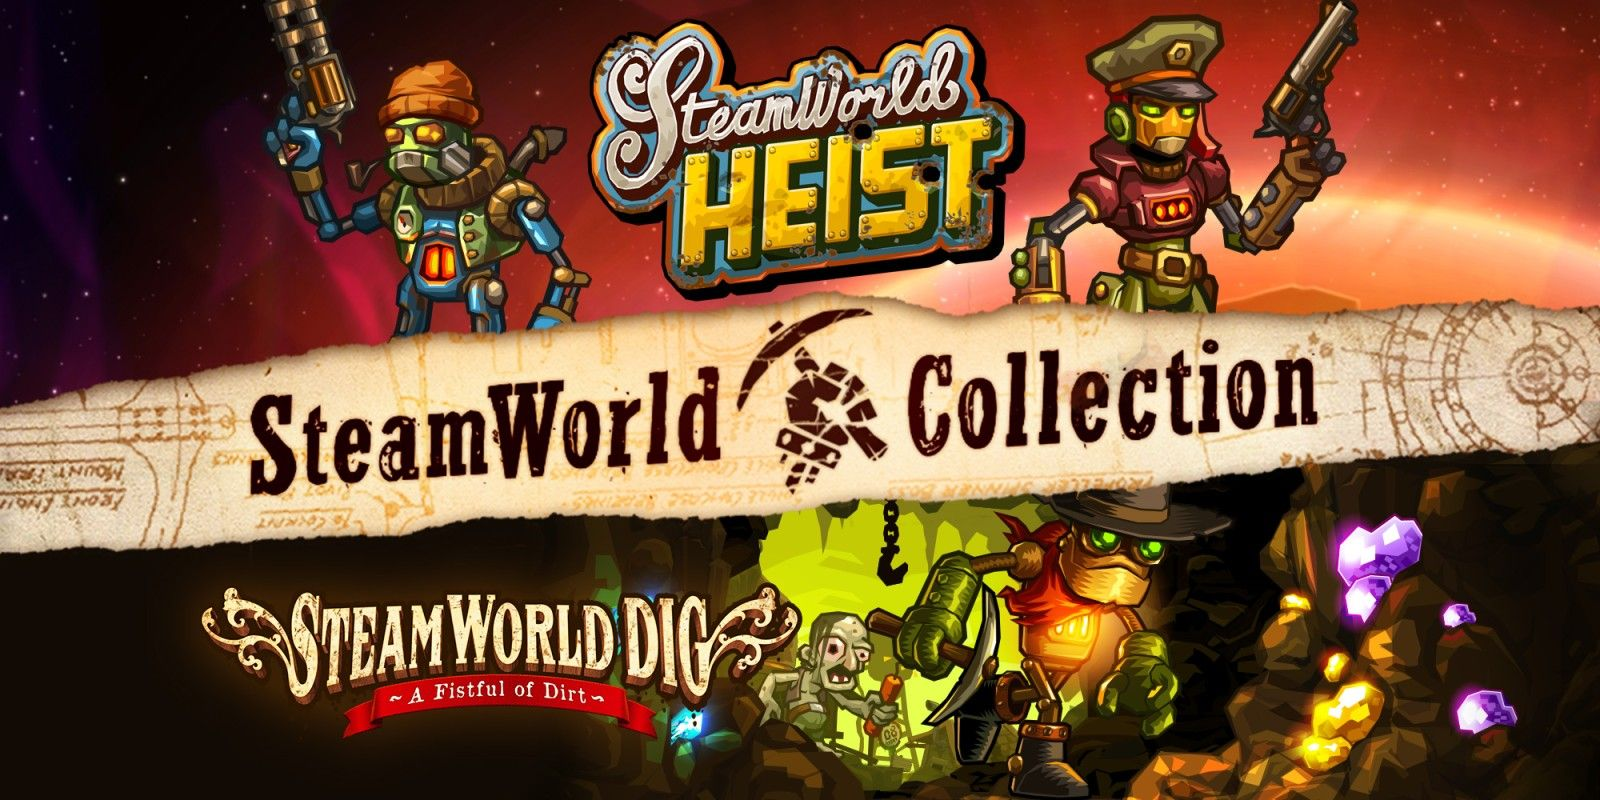 H2x1_WiiU_SteamWorldCollection_image1600w.jpg